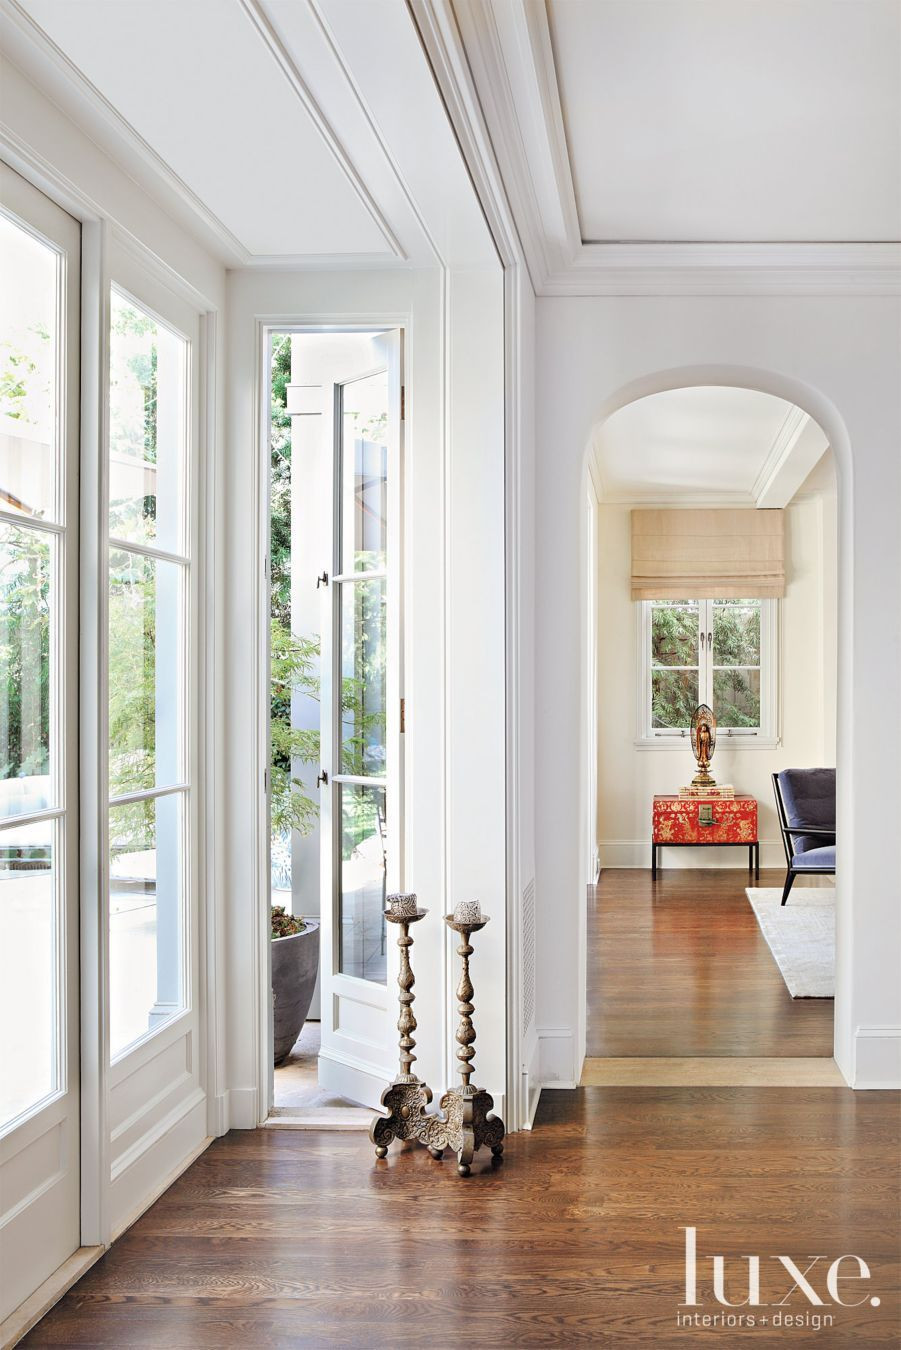 discount hardwood floors and molding los angeles of arched interior doorways and views to the garden reflect the within arched interior doorways and views to the garden reflect the provena§al influence that informs the home